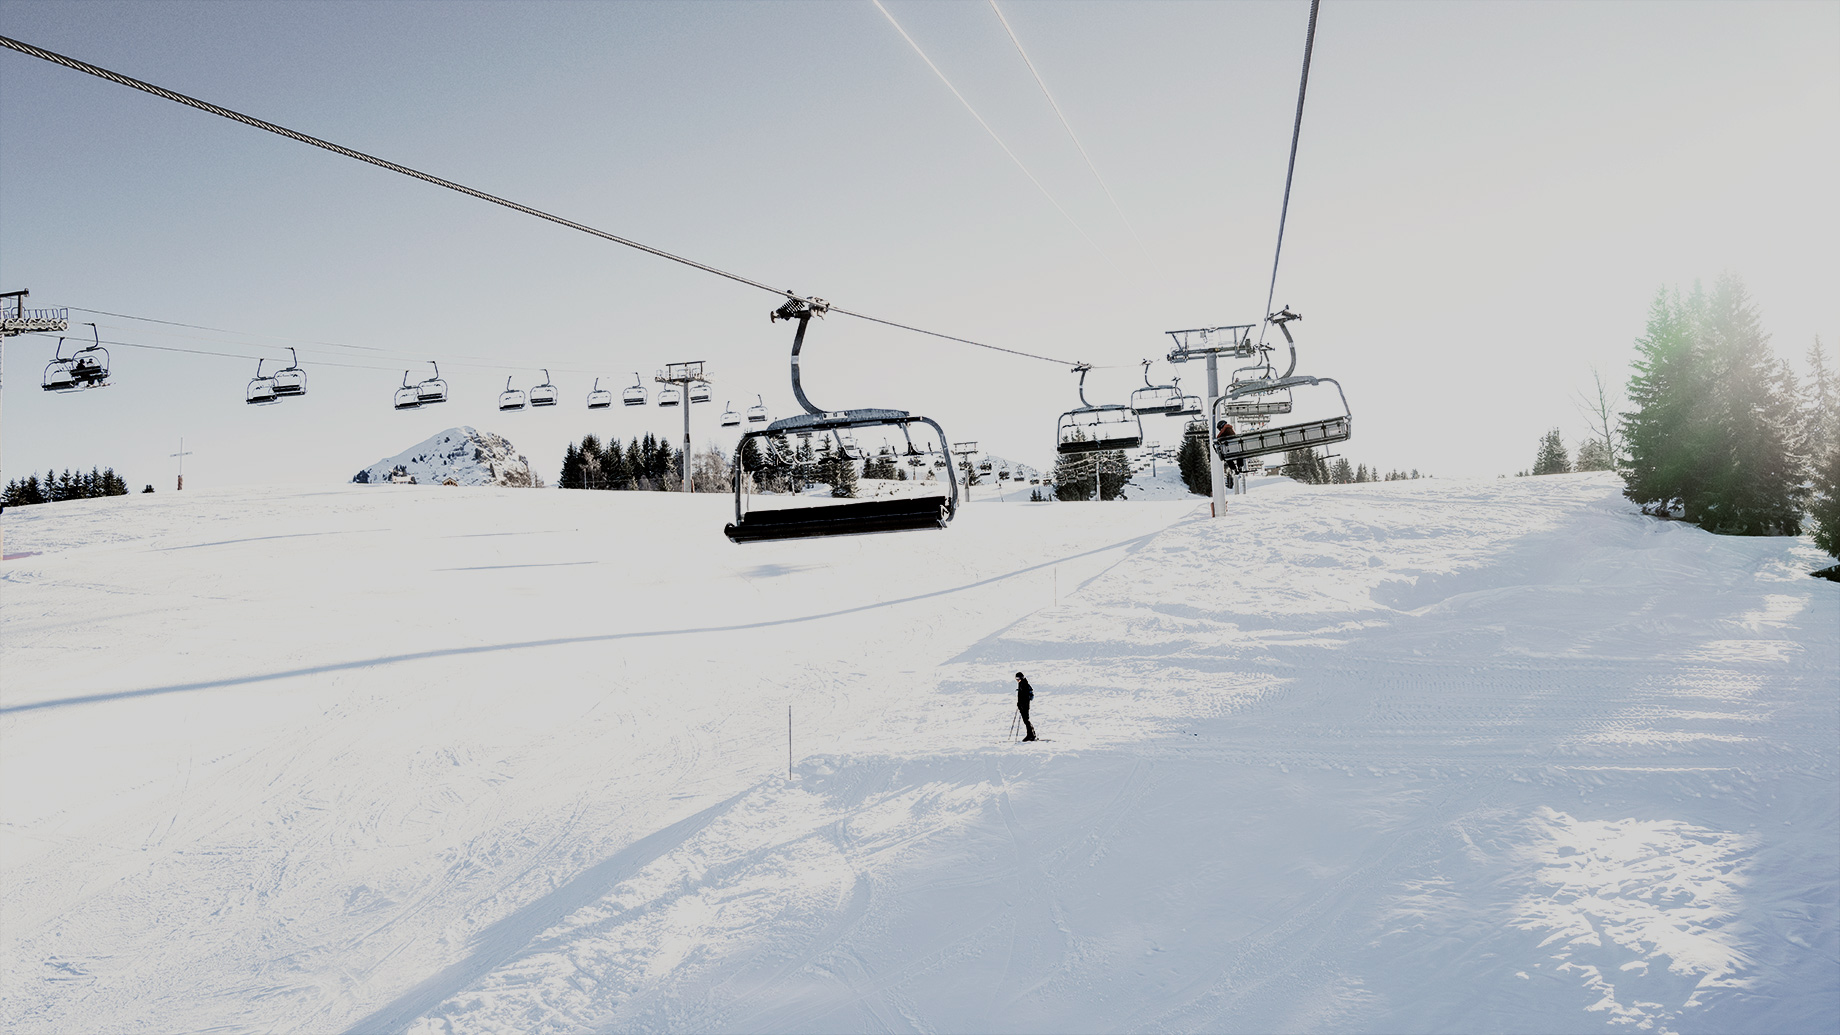 Good Boy Wolf Photographer, filmic portrait, lesgets sky resort, gondolas moving in the sky